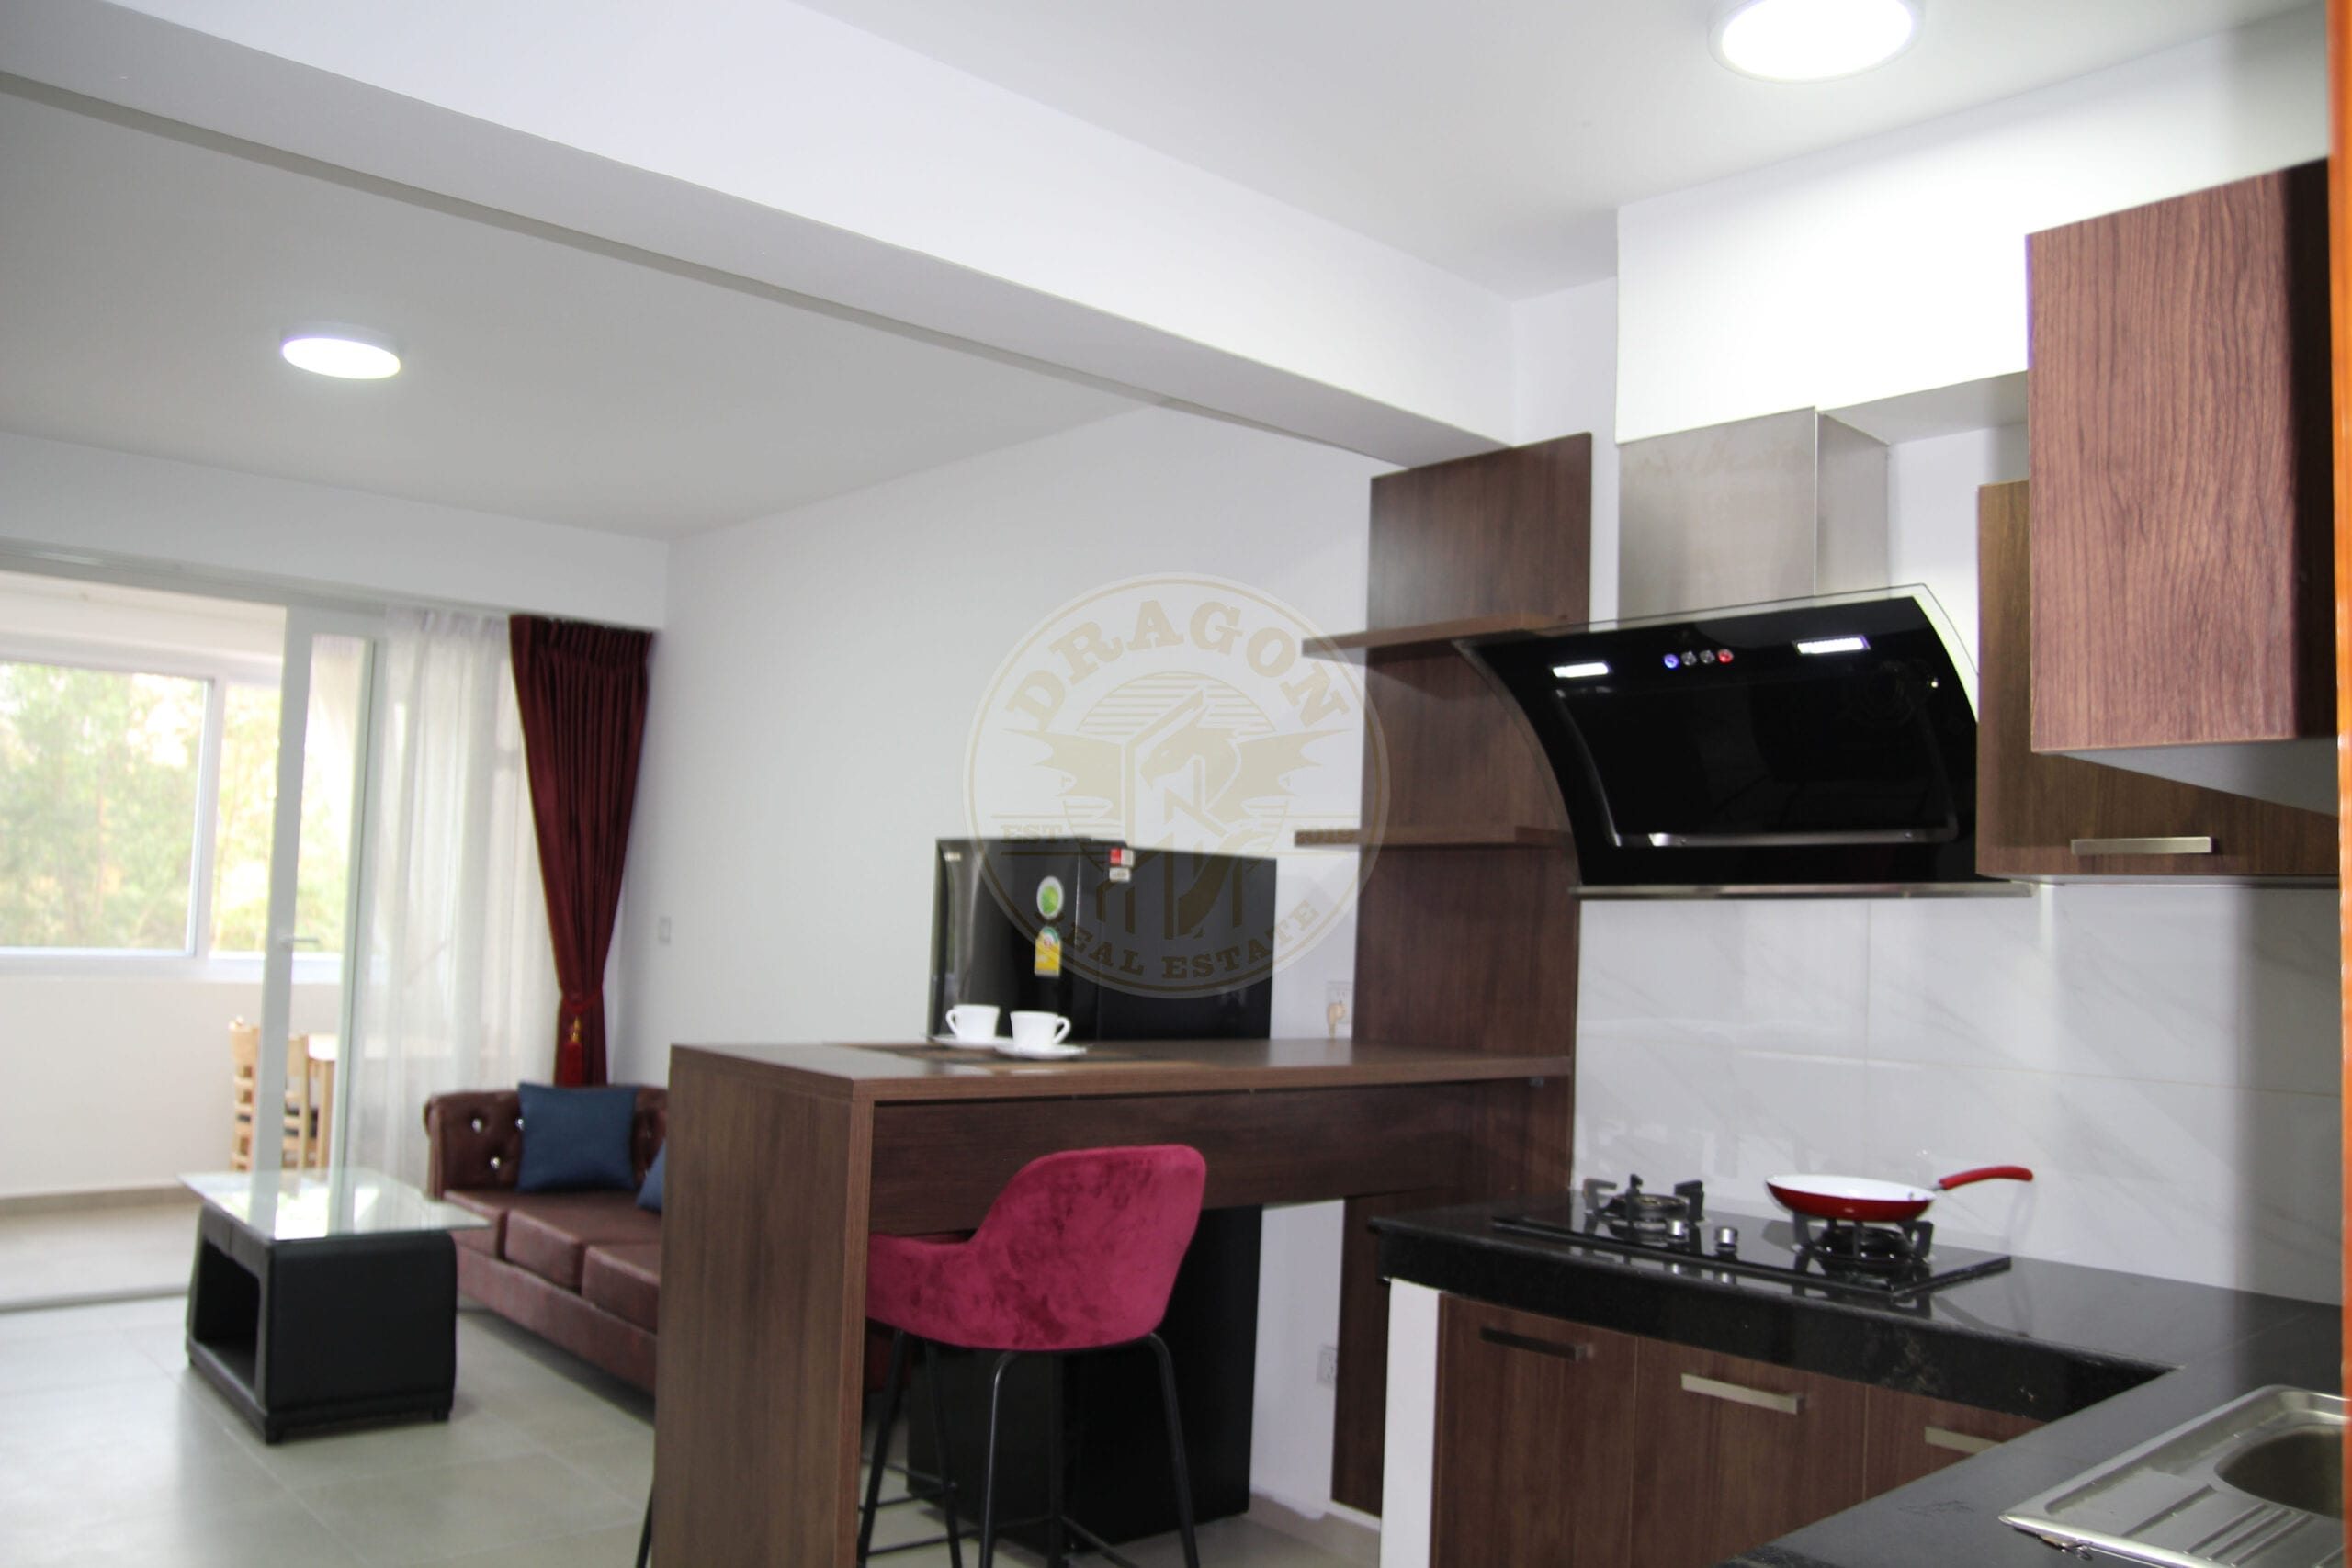 Remarkable Value. Apartment for Rent